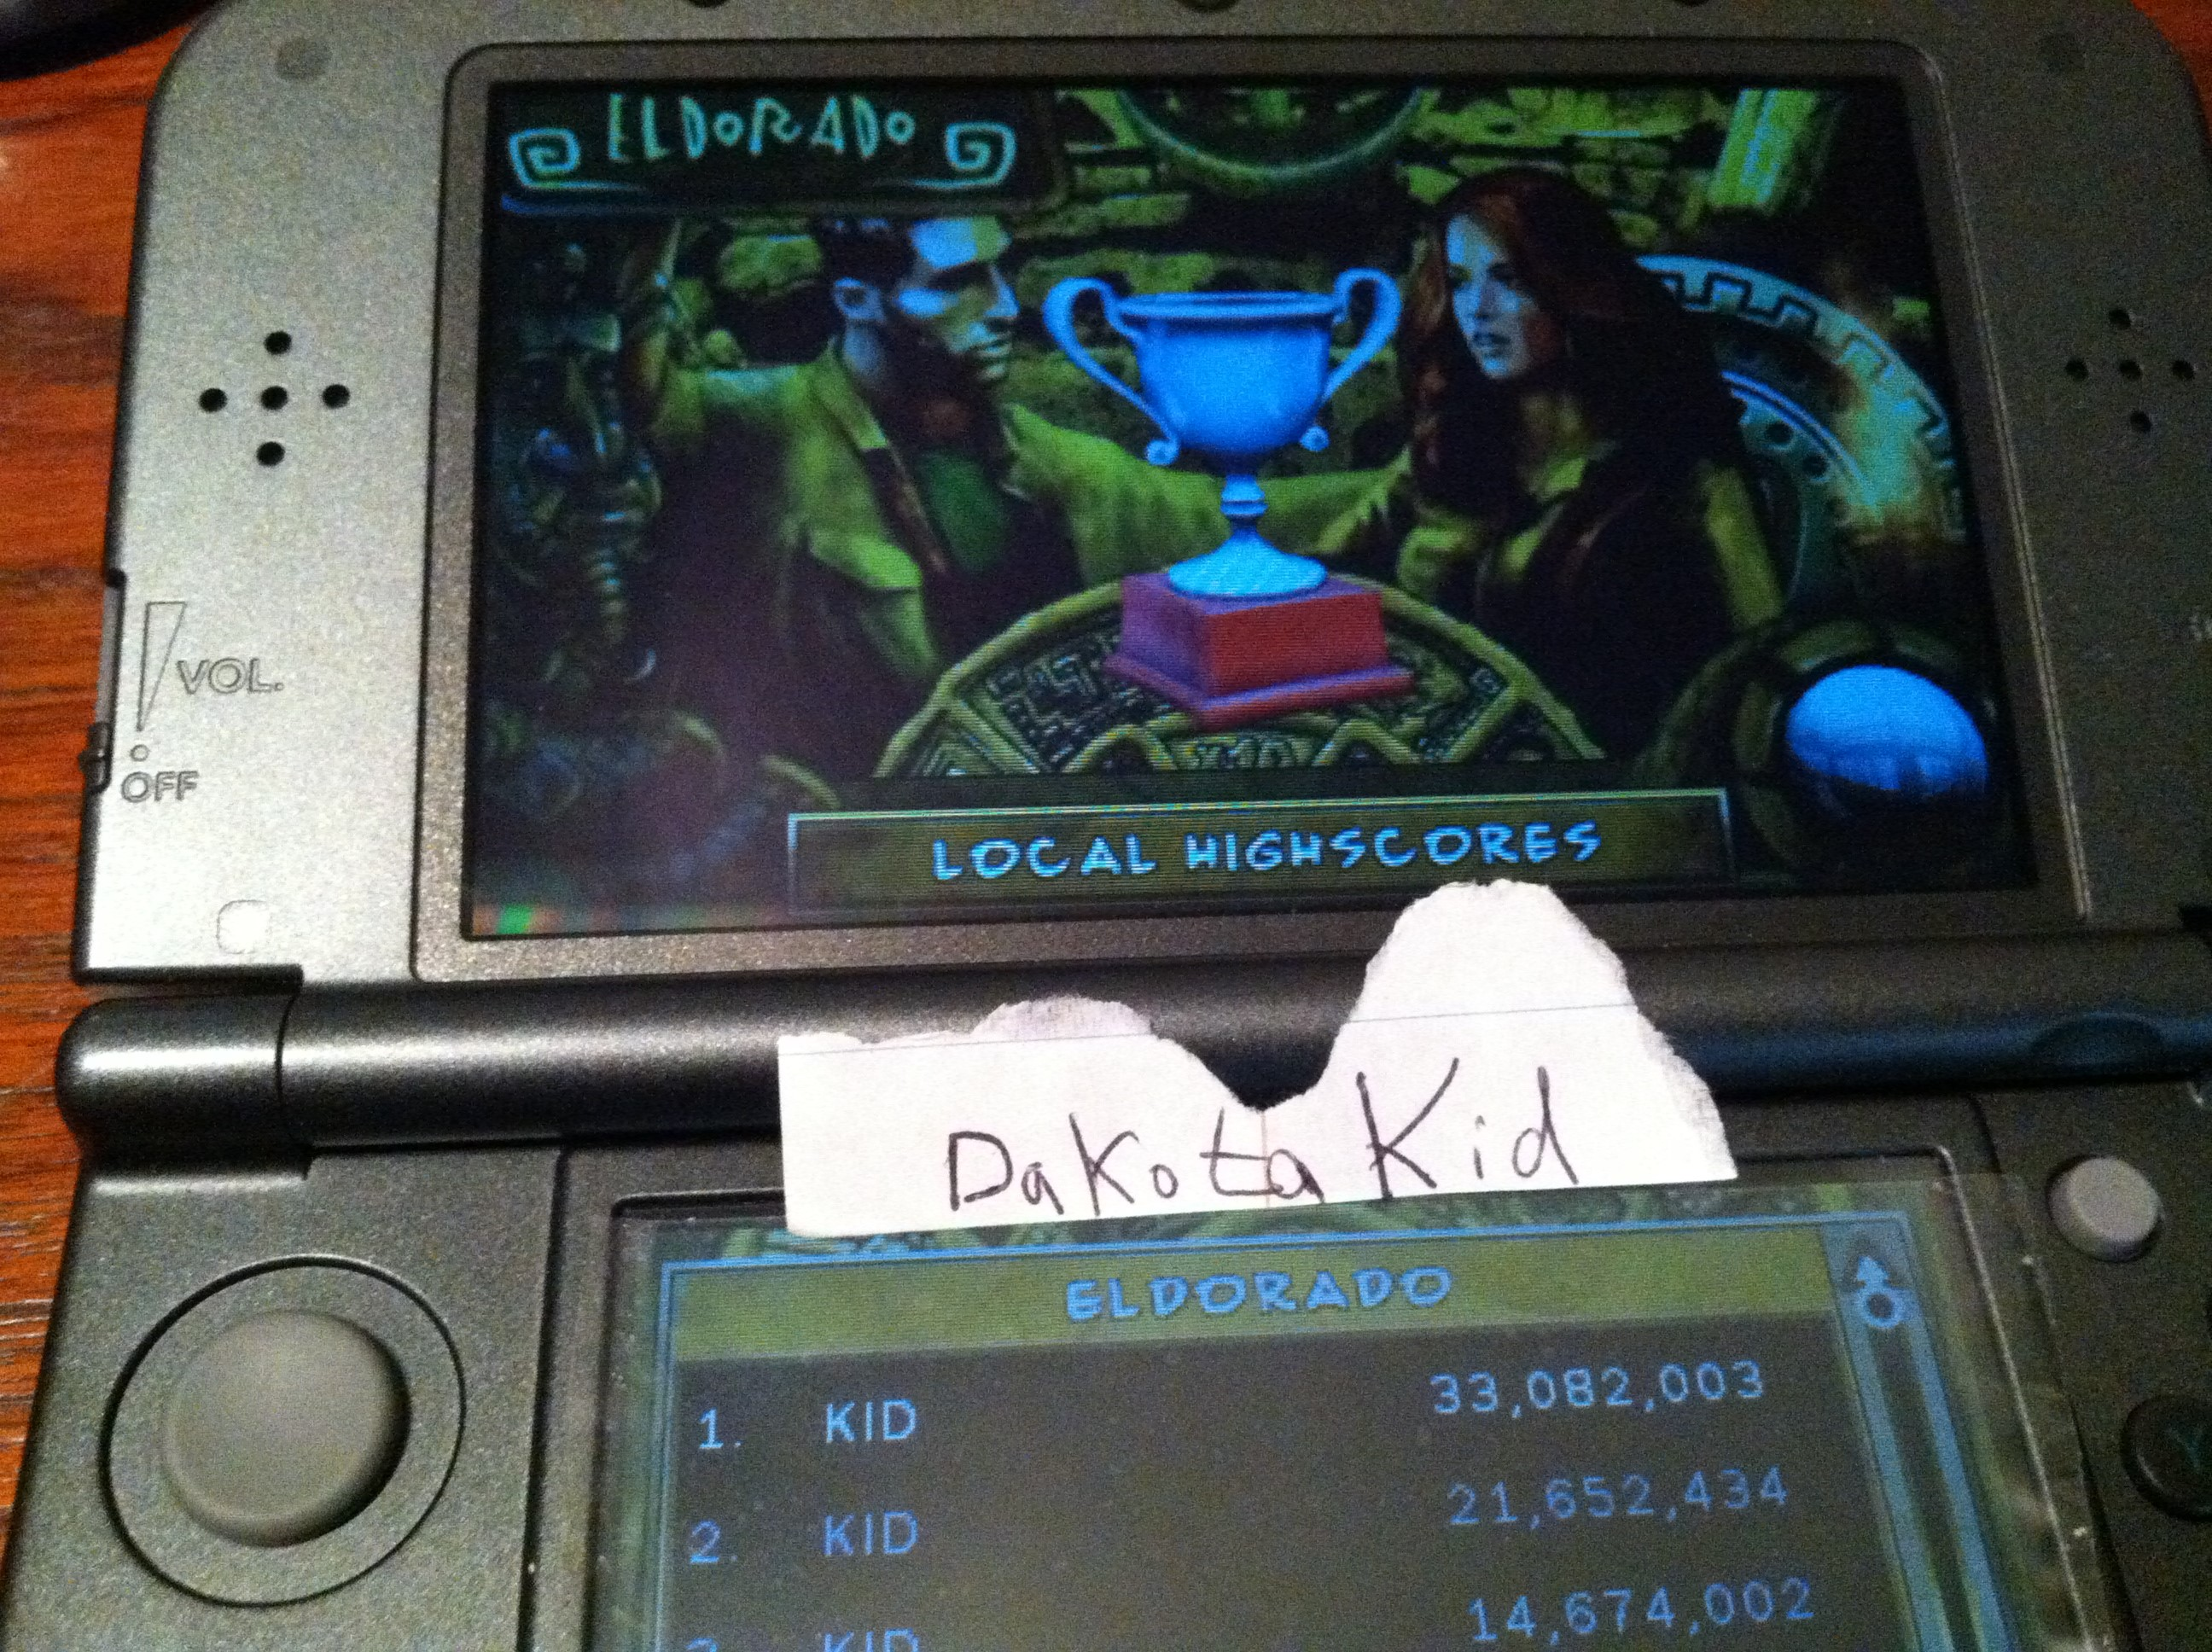 DakotaKid: Zen Pinball 3D: Eldorado (Nintendo 3DS) 33,082,003 points on 2017-11-30 15:11:52